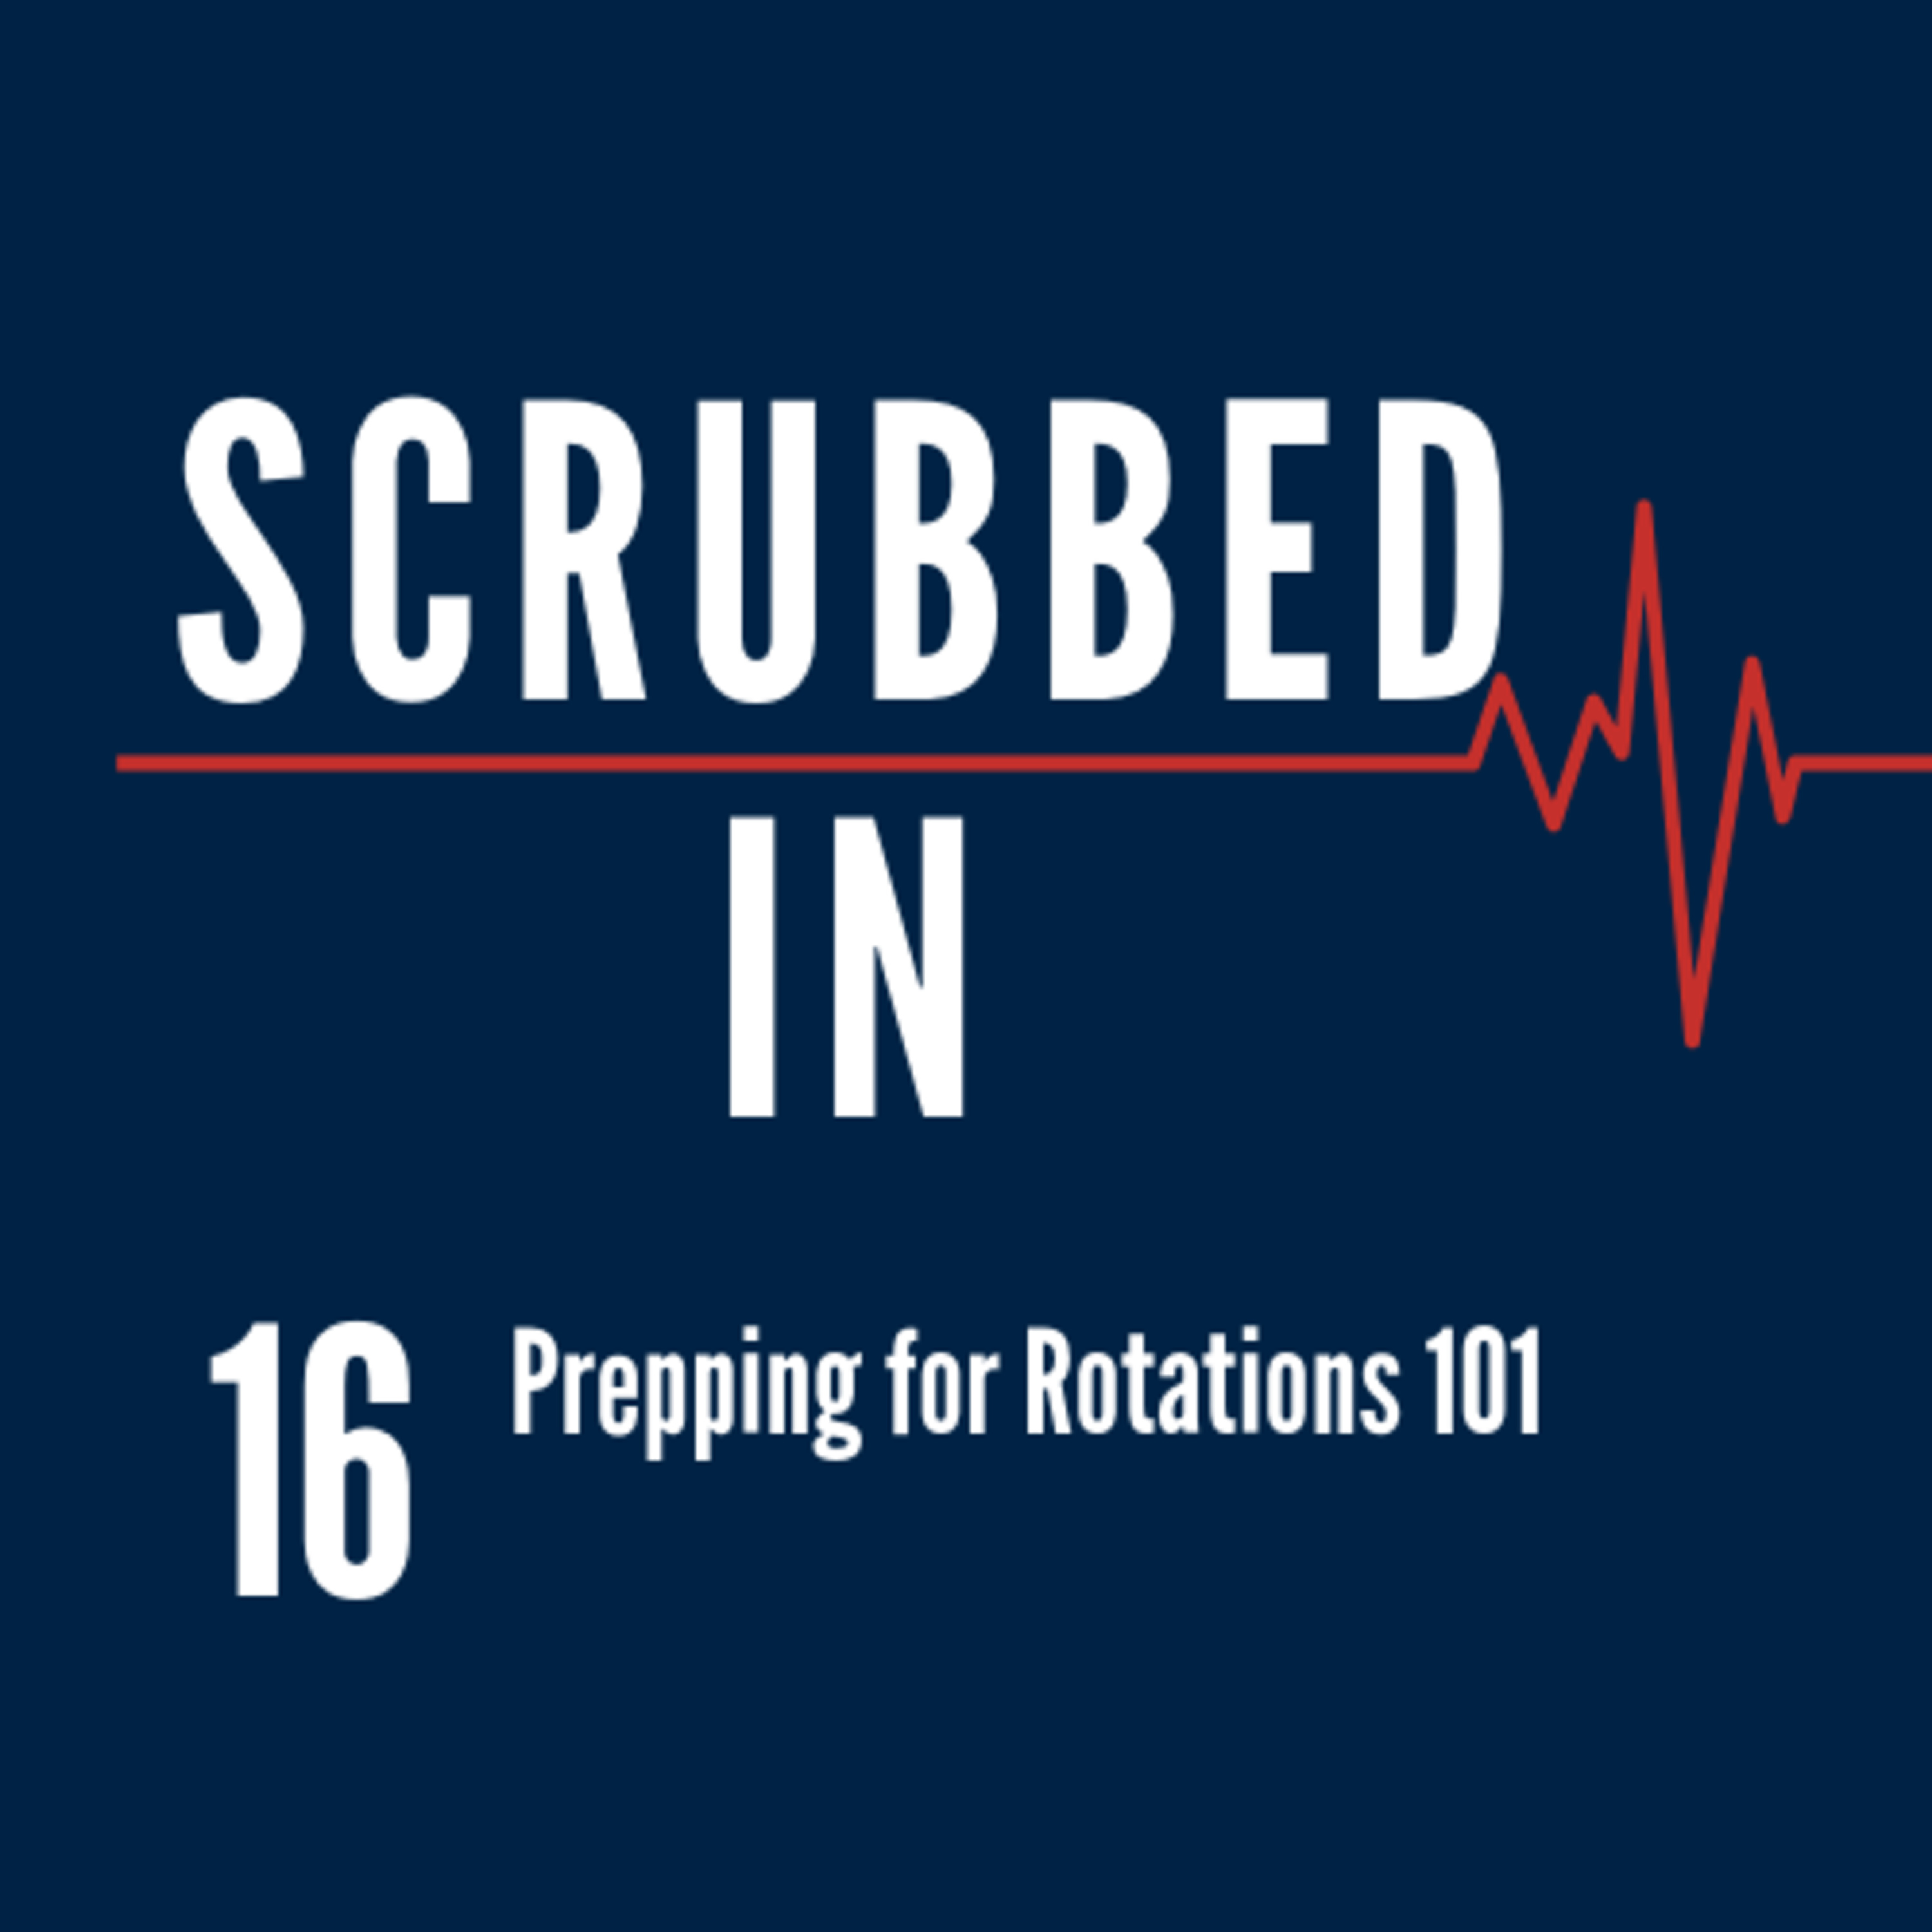 Scrubbed In - Prepping For Rotations 101